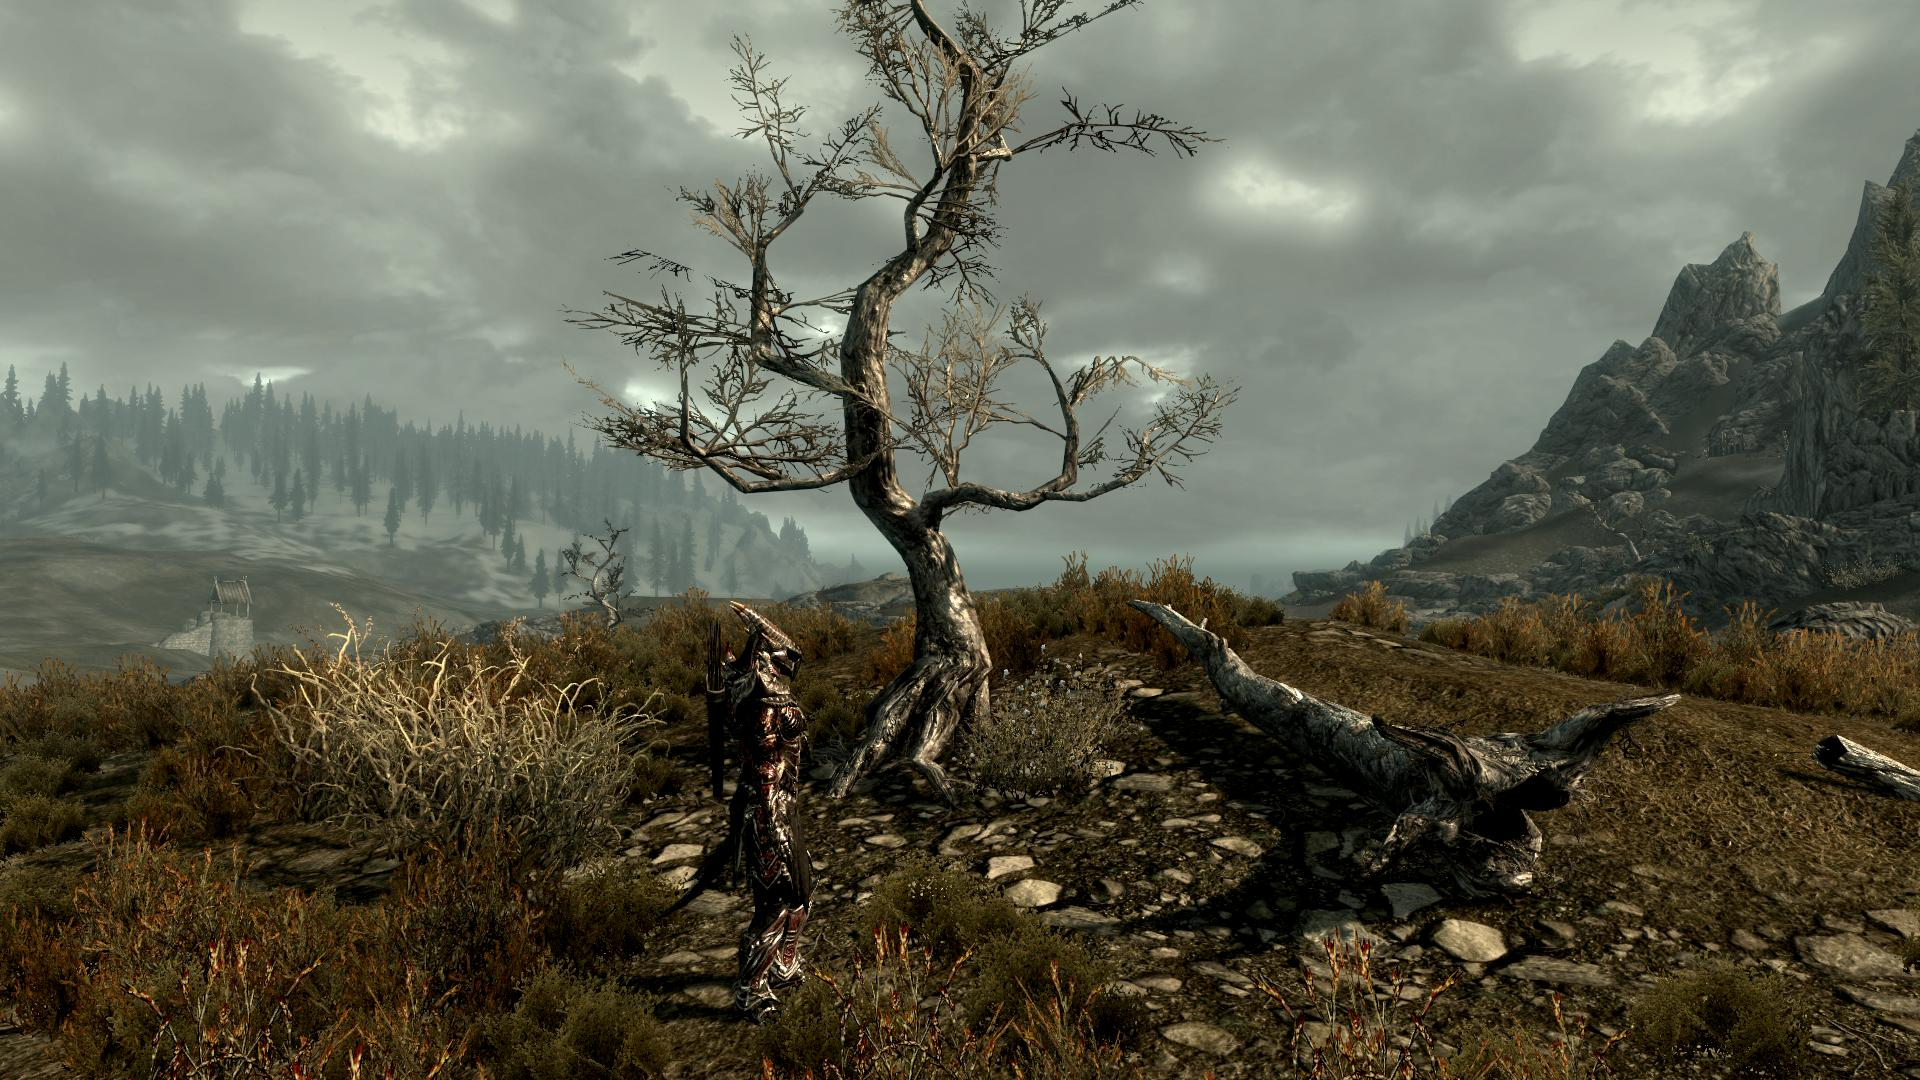 000185.Jpg - Elder Scrolls 5: Skyrim, the